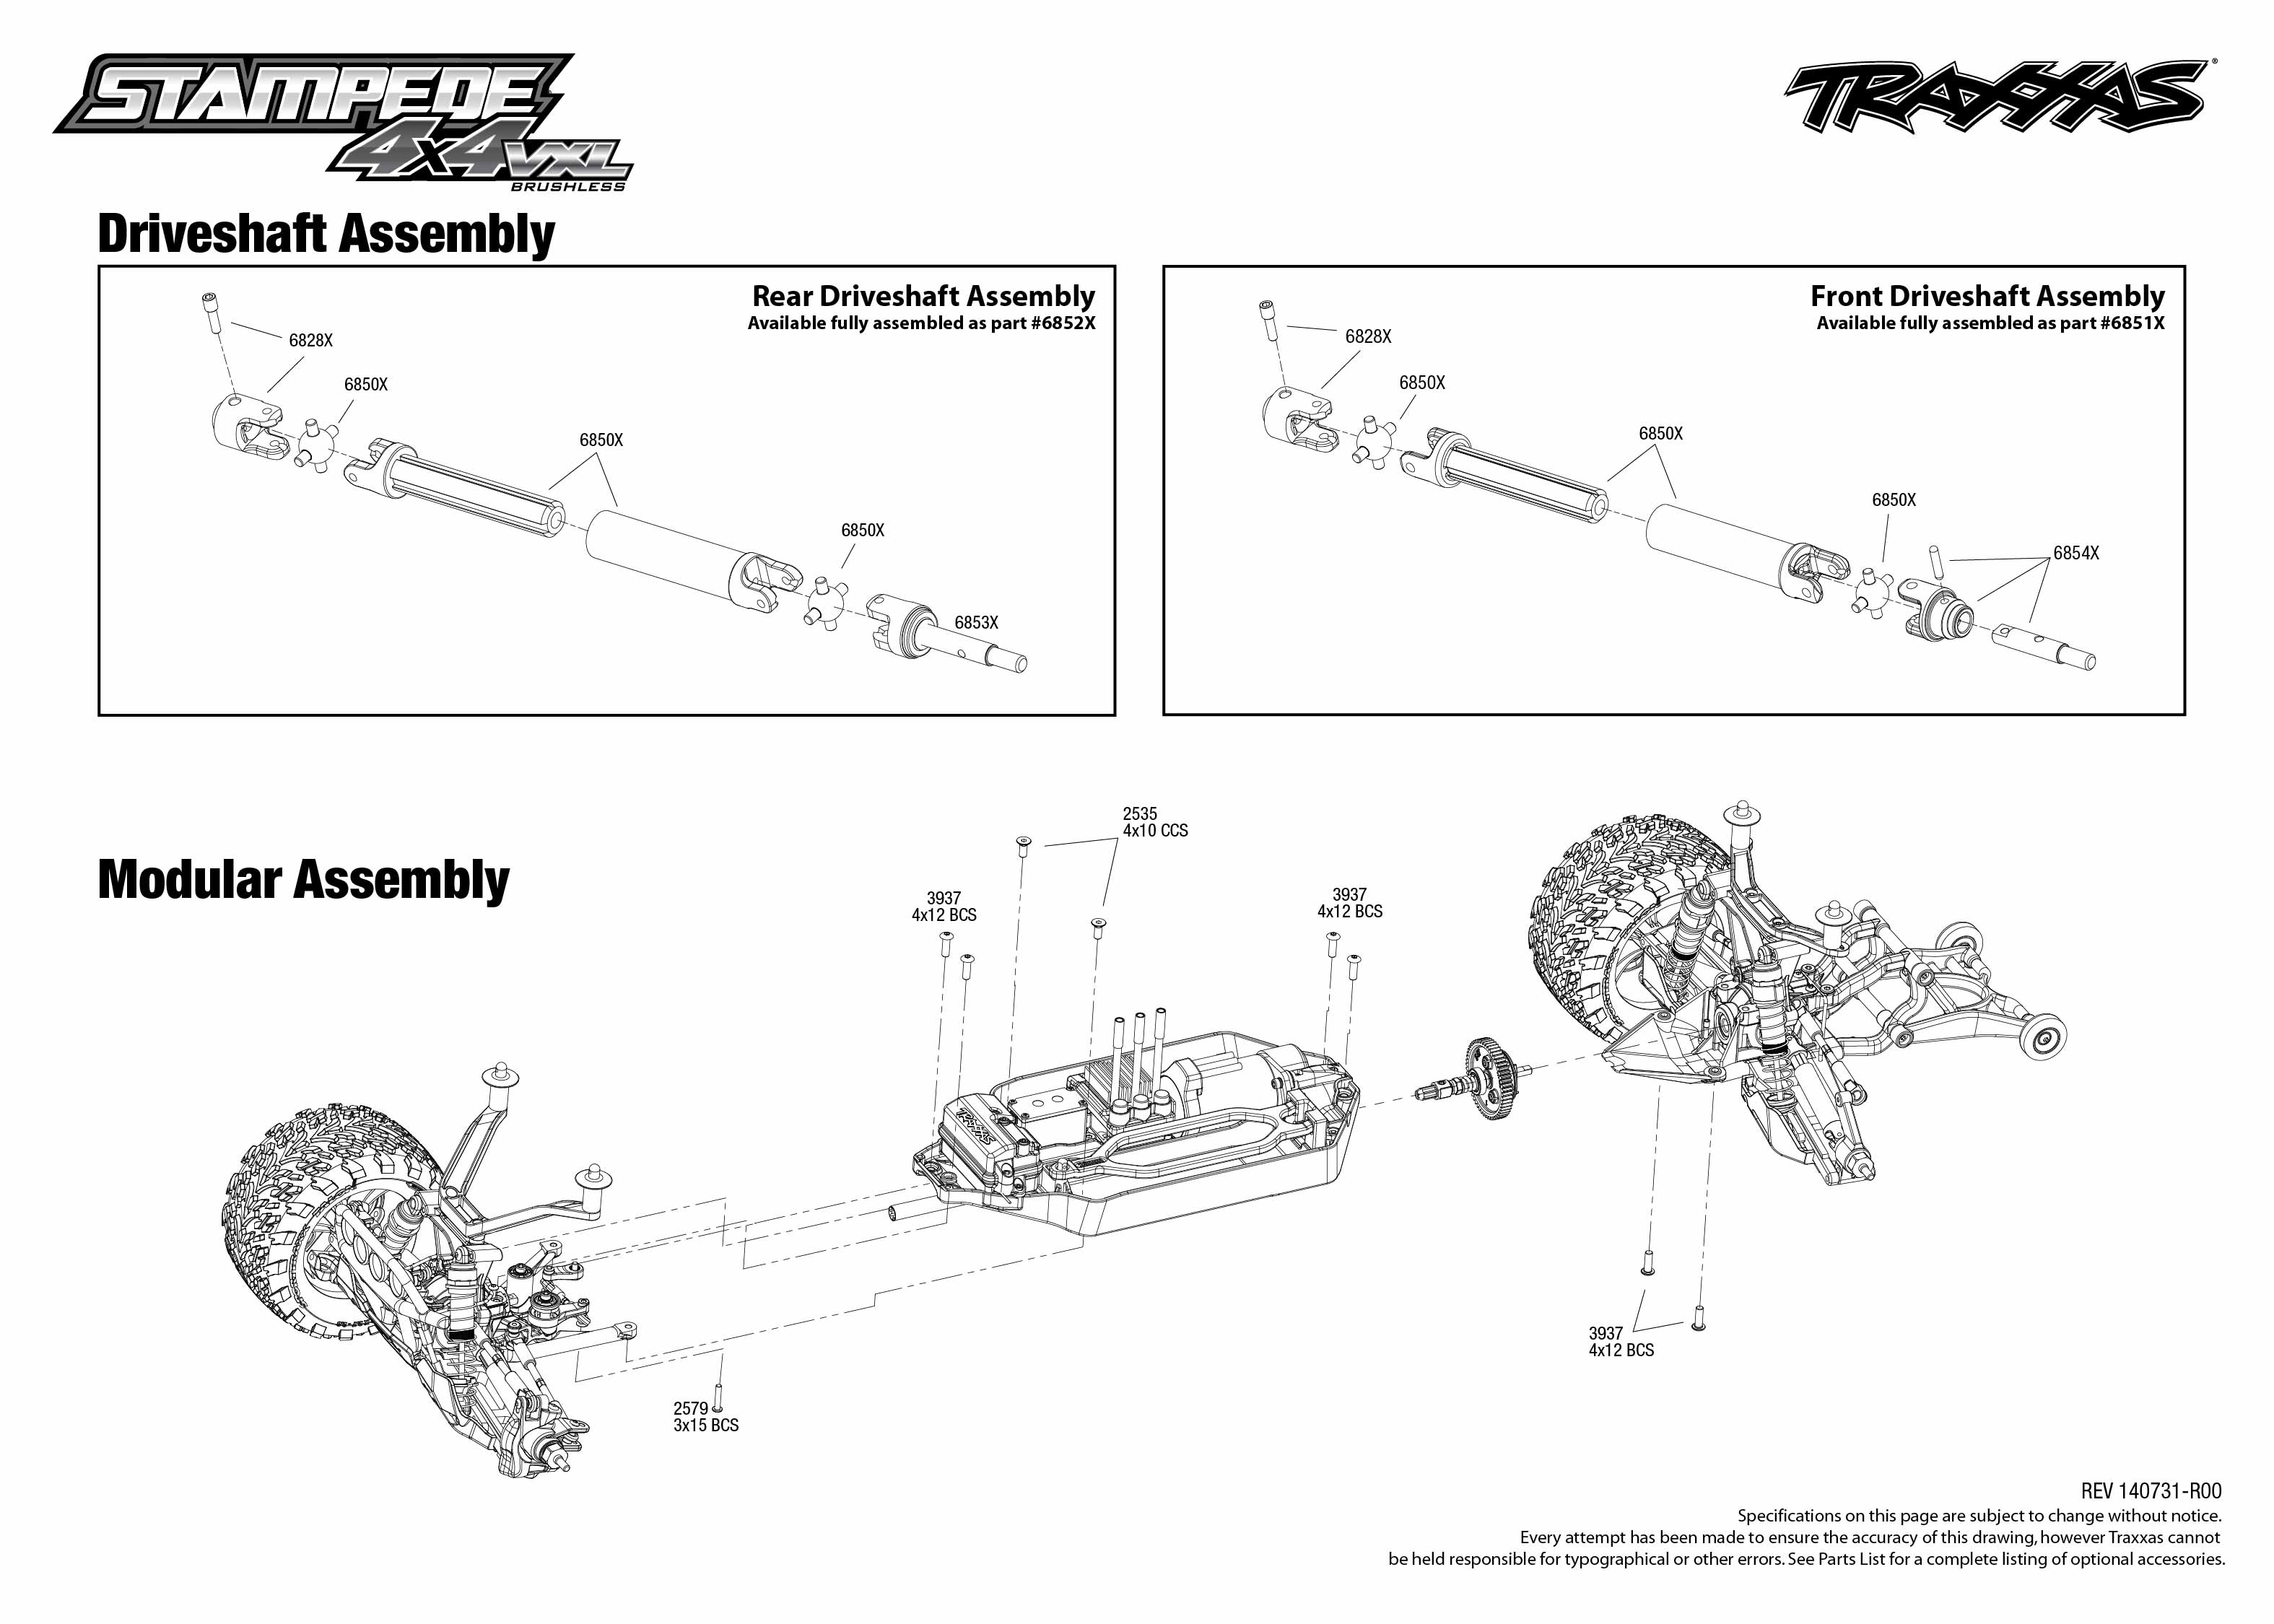 traxxas rustler vxl parts diagram of the tabernacle moses stampede 4x4 67086 1 driveshaft assembly exploded